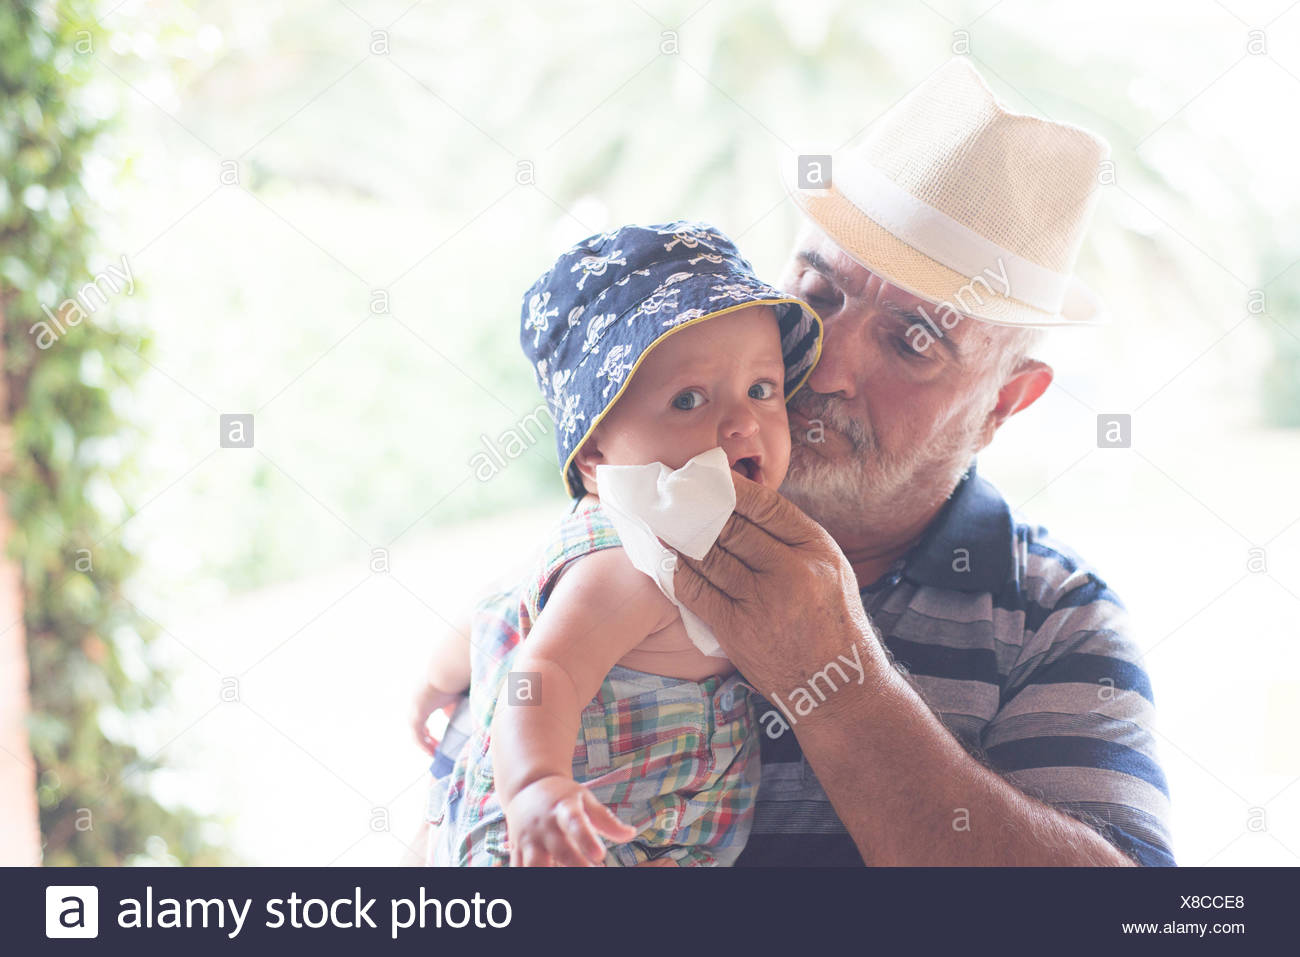 Grandfather wiping baby boy's chin with handkerchief - Stock Image